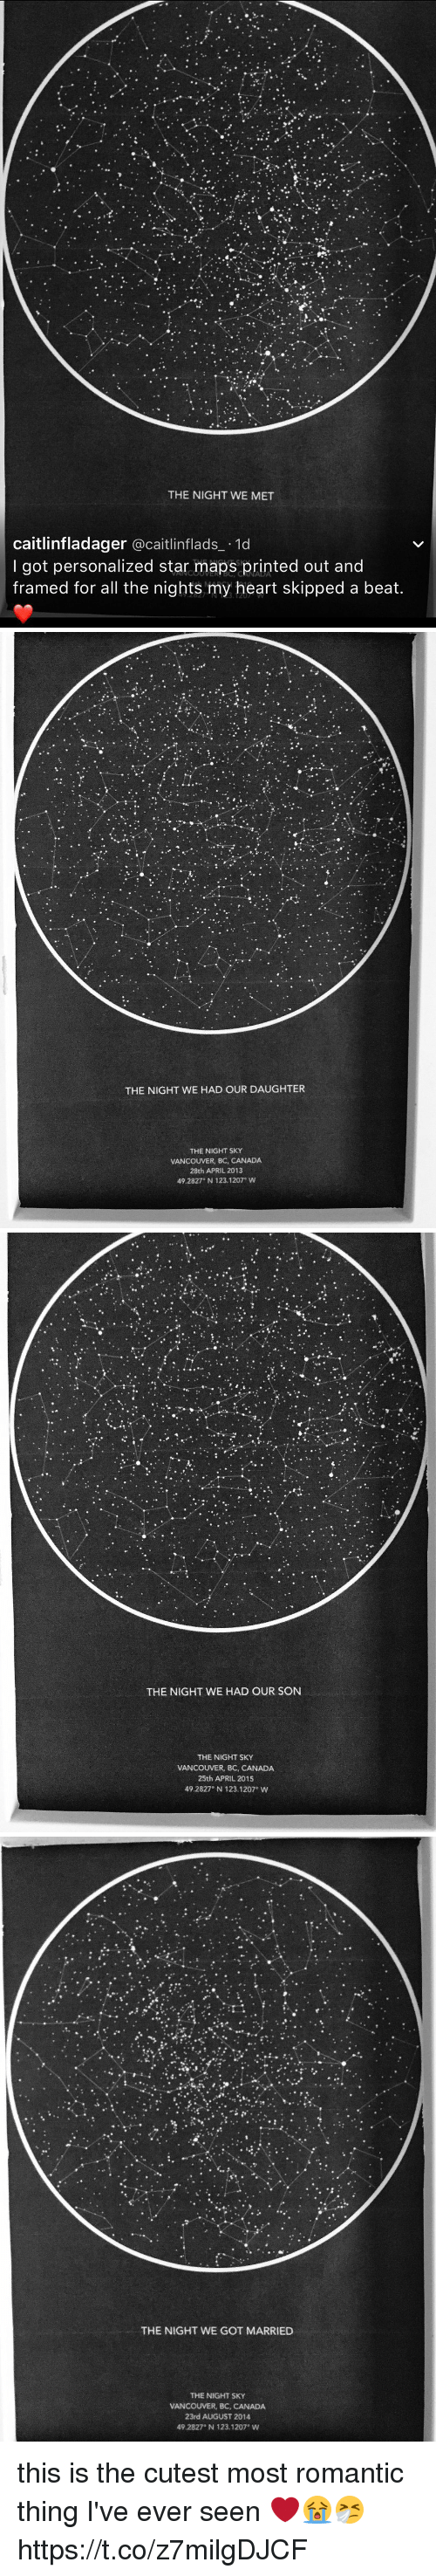 April: THE NIGHT WE MET  caitlinfladager  acaitlinflads 1d  I got personalized star maps printed out and  framed for all the nights my heart skipped a beat.   THE NIGHT WE HAD OUR DAUGHTER  THE NIGHT SKY  VANCOUVER, BC, CANADA  28th APRIL 2013  49.2827 N 123.1207 W   THE NIGHT WE HAD OUR SON  THE NIGHT SKY  VANCOUVER, BC, CANADA  25th APRIL 2015  49.2827 N 123.1207° W   THE NIGHT WE GOT MARRIED  THE NIGHT SKY  VANCOUVER, BC, CANADA  23rd AUGUST 2014  49.2827 N 123.1207 W this is the cutest most romantic thing I've ever seen ❤️😭🤧 https://t.co/z7milgDJCF